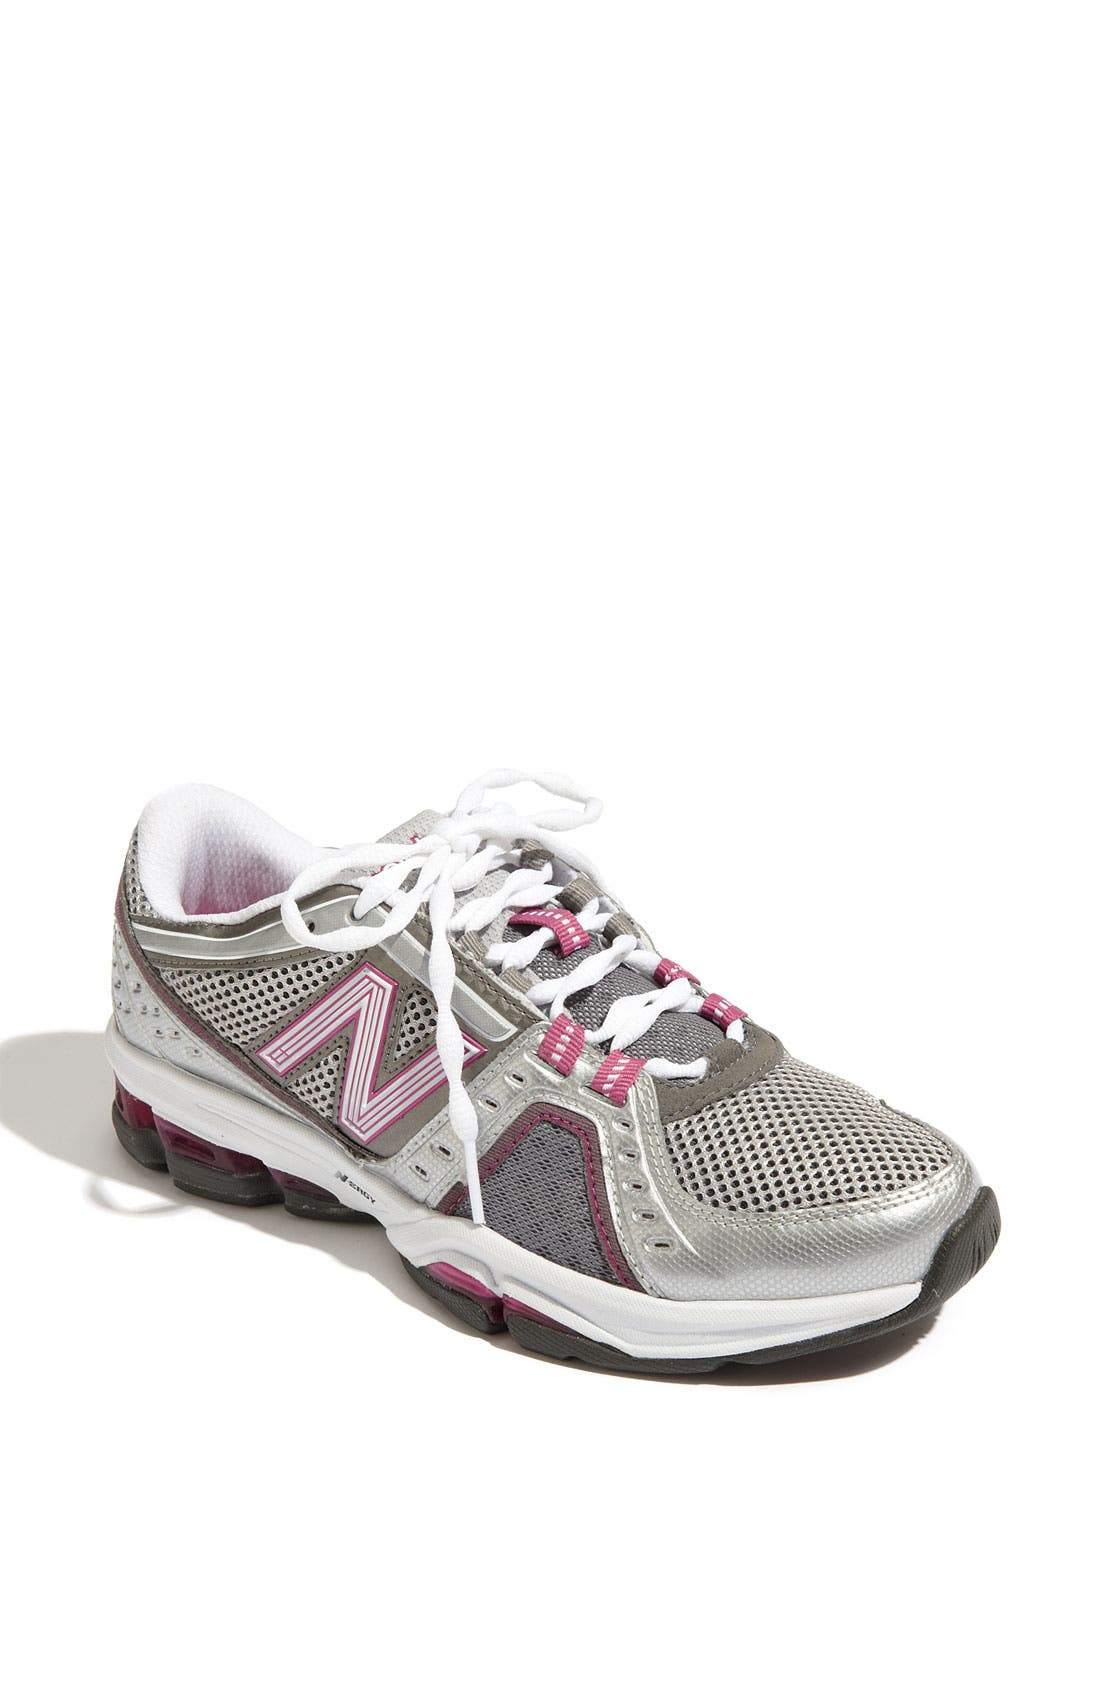 Main Image - New Balance '1211' Training Shoe (Women)